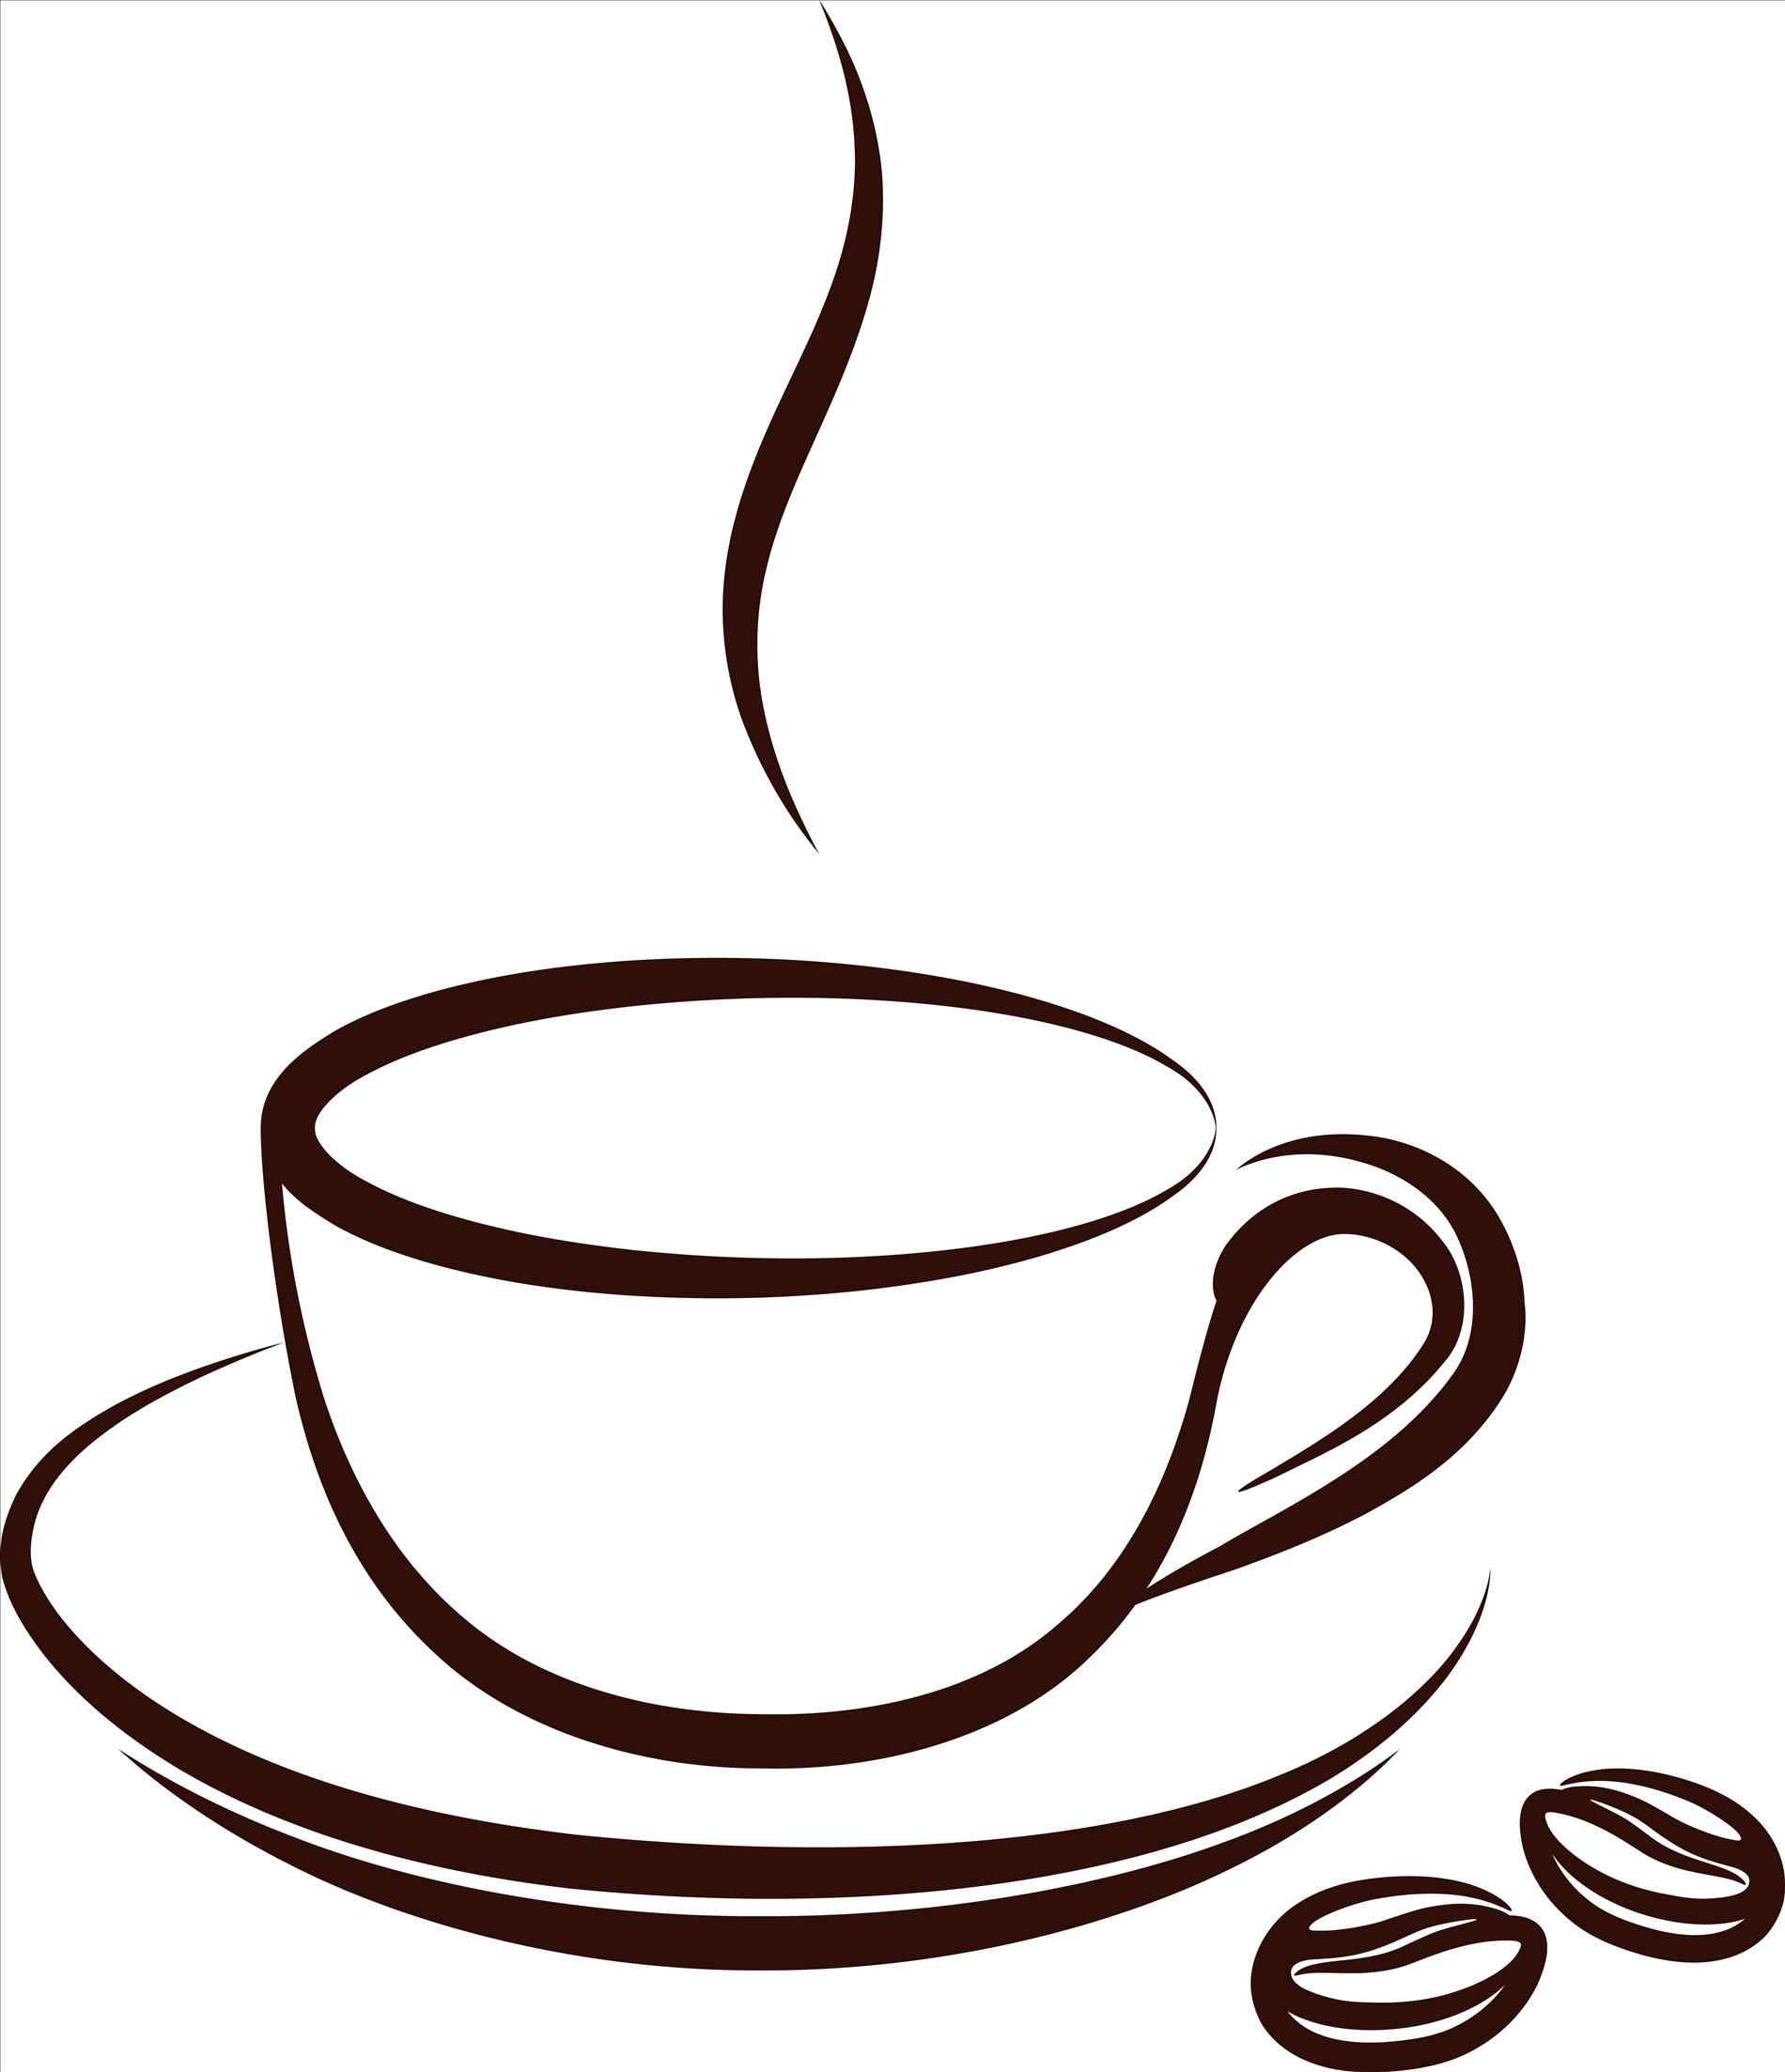 coffee cup images clip art free animaxwallpaper com rh animaxwallpaper com coffee cup clip art free coffee tea clip art free